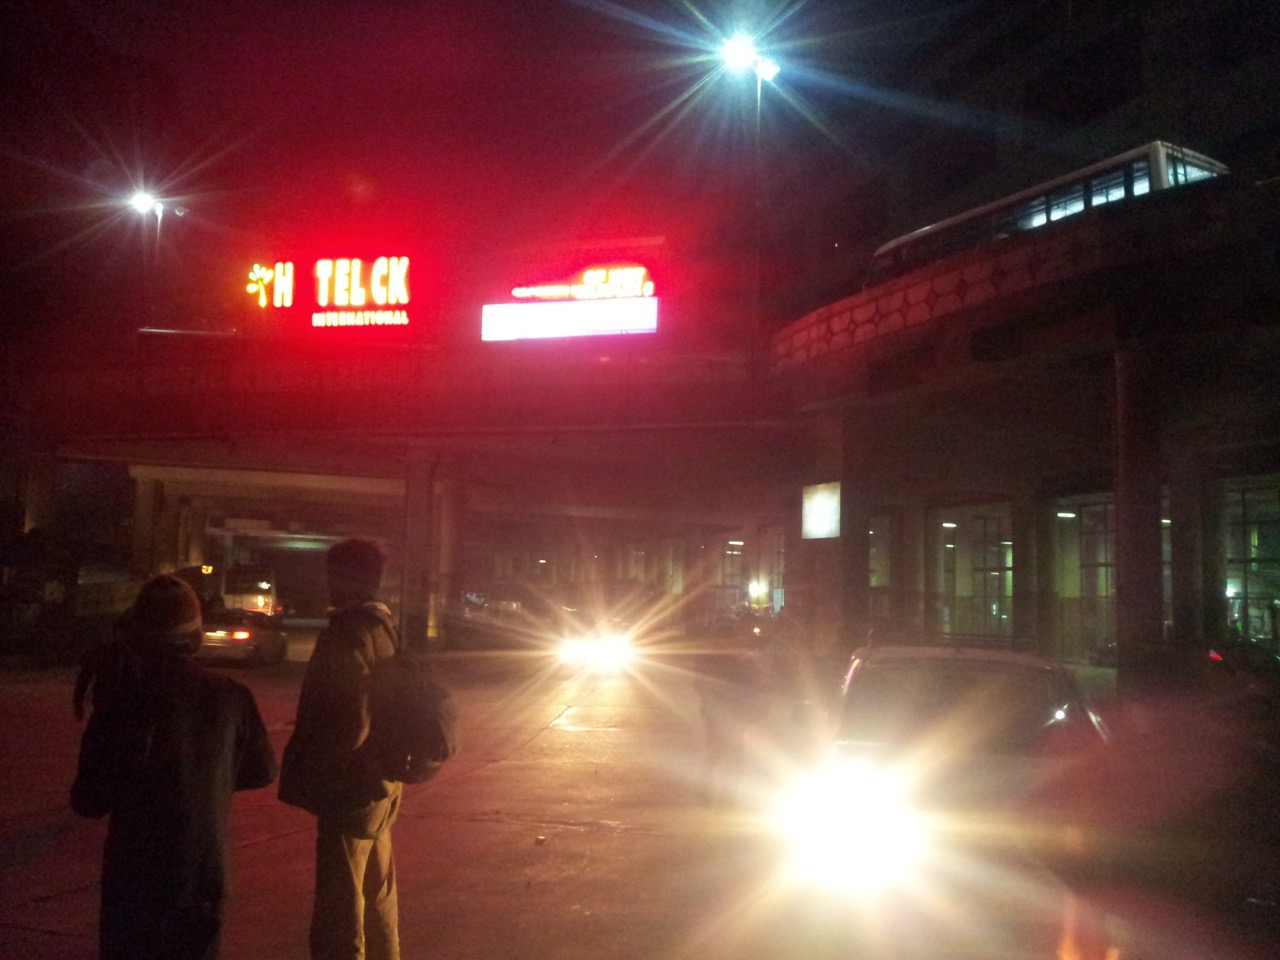 Shimla's new bus stand. At 6:00 pm, there wasn't a shade of light left.